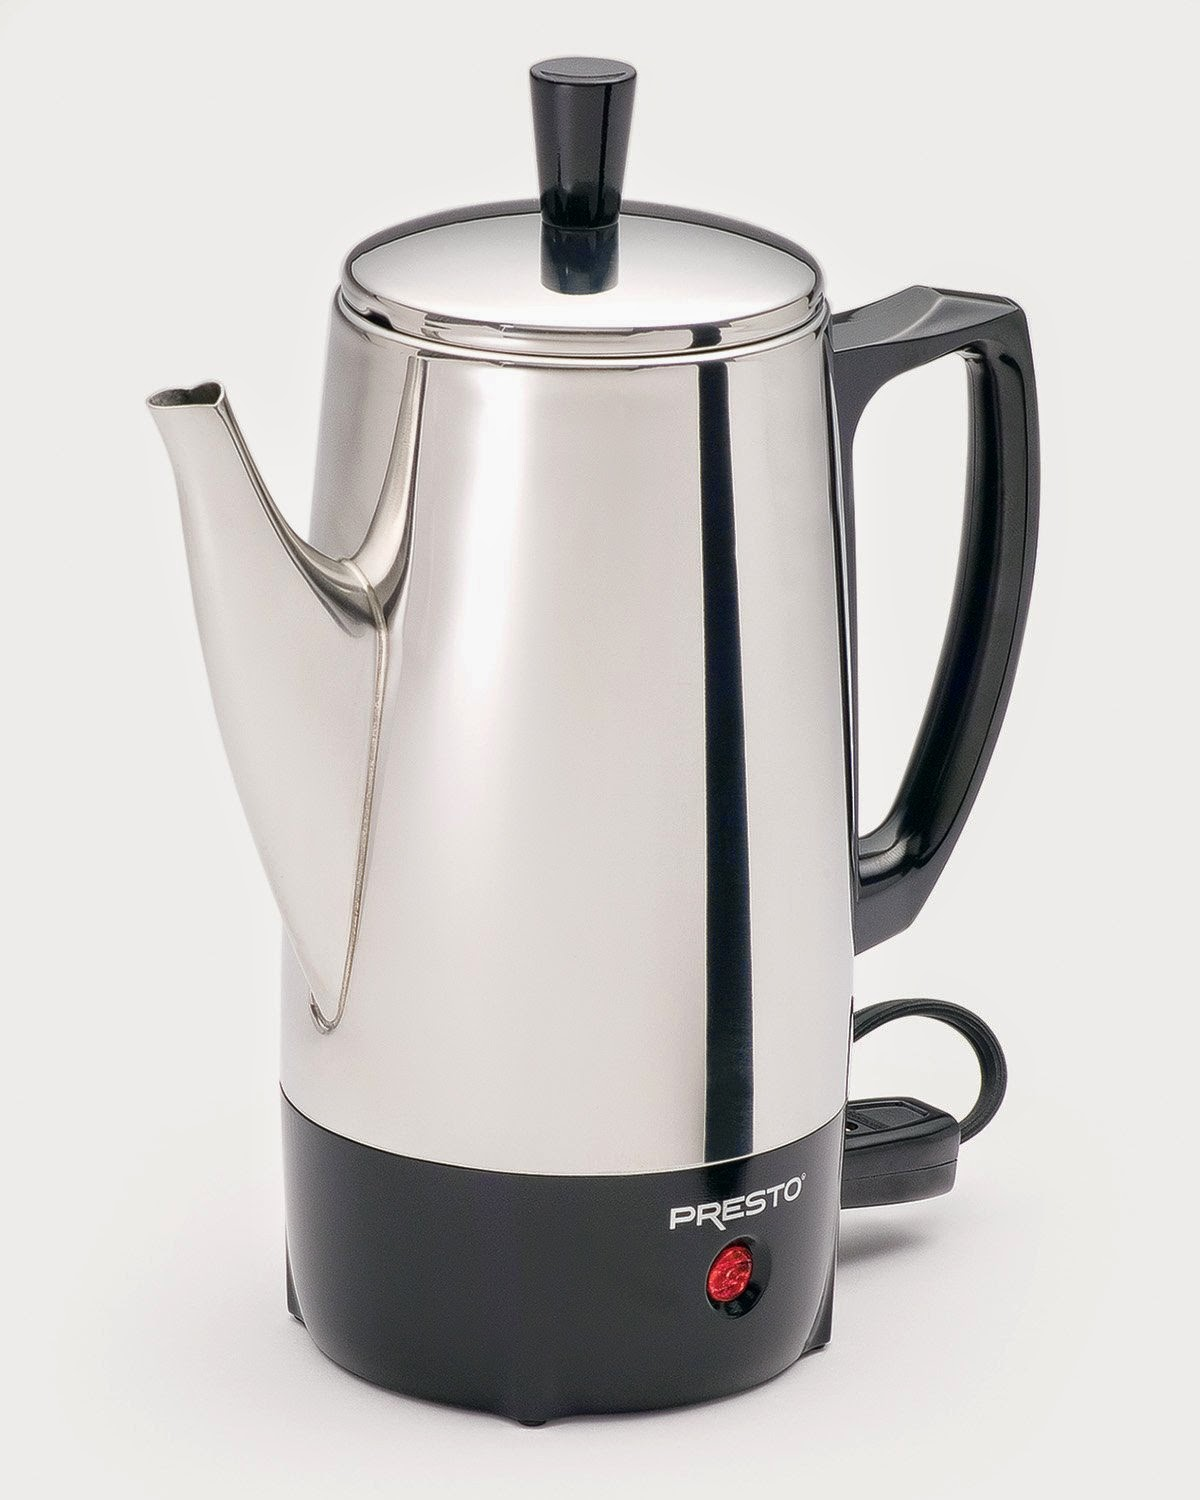 National Presto Ind 02822 6 Cup Stainless Steel Percolator